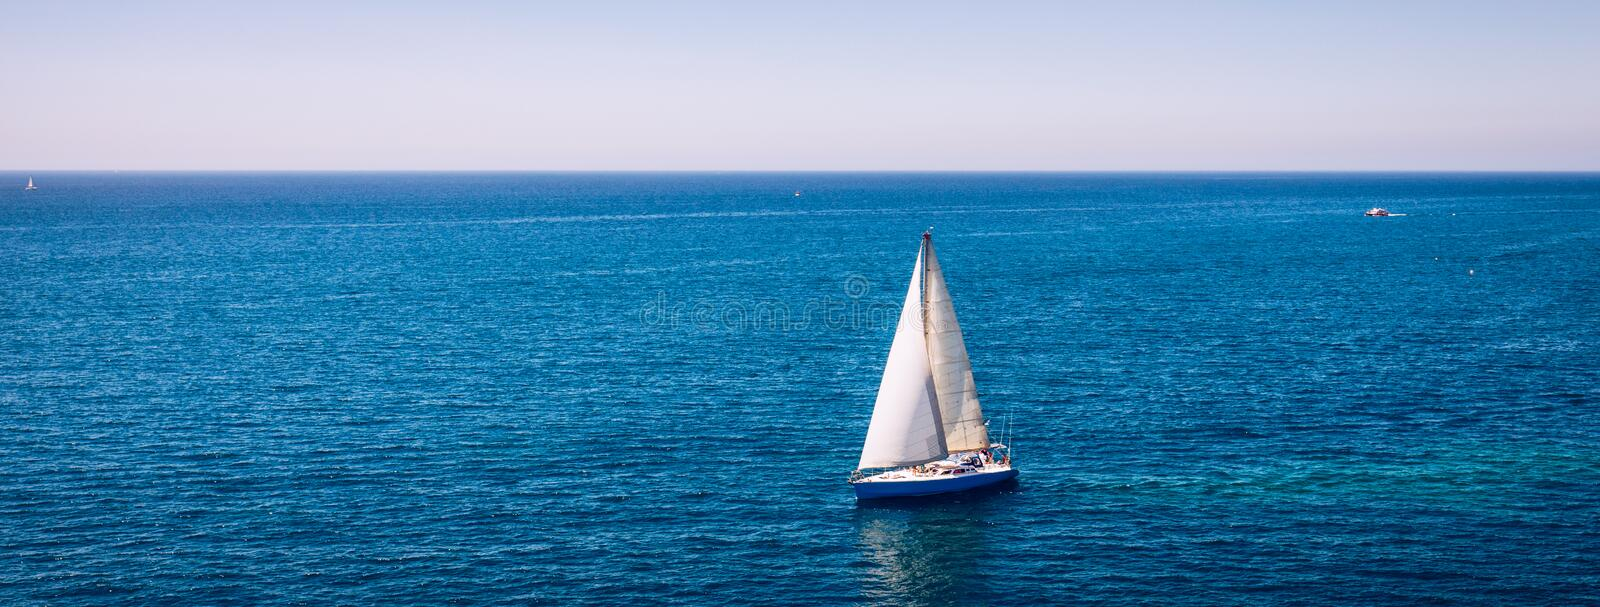 White sail boat isolated in blue sea water. Sailboat in the sea in the sunlight, luxury summer adventure, active vacation in royalty free stock photos